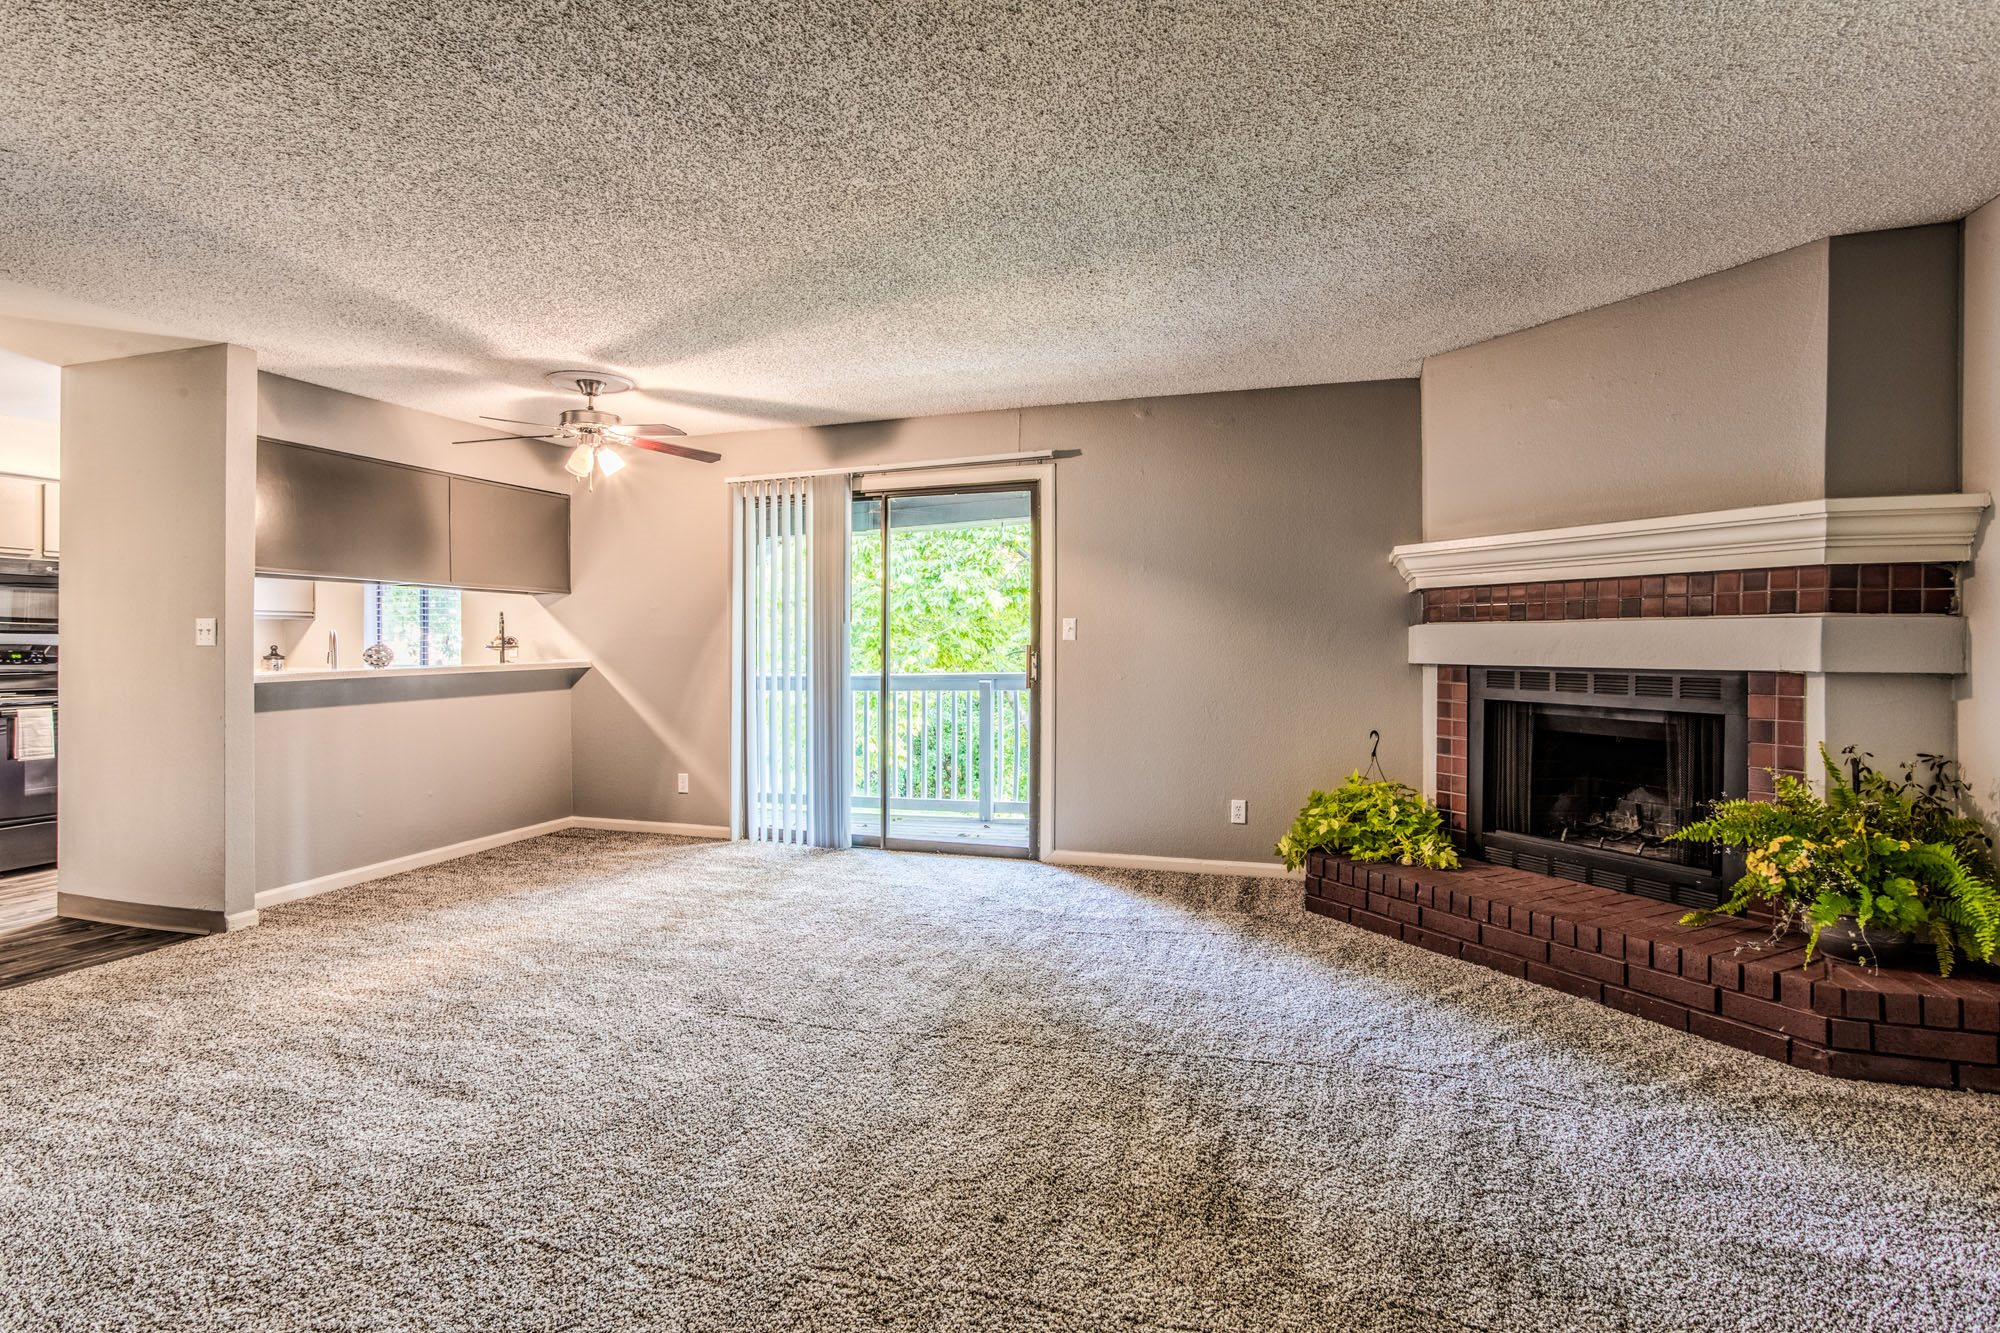 Open Floor Plans at Perry 81 Apartments in Overland Park, Kansas